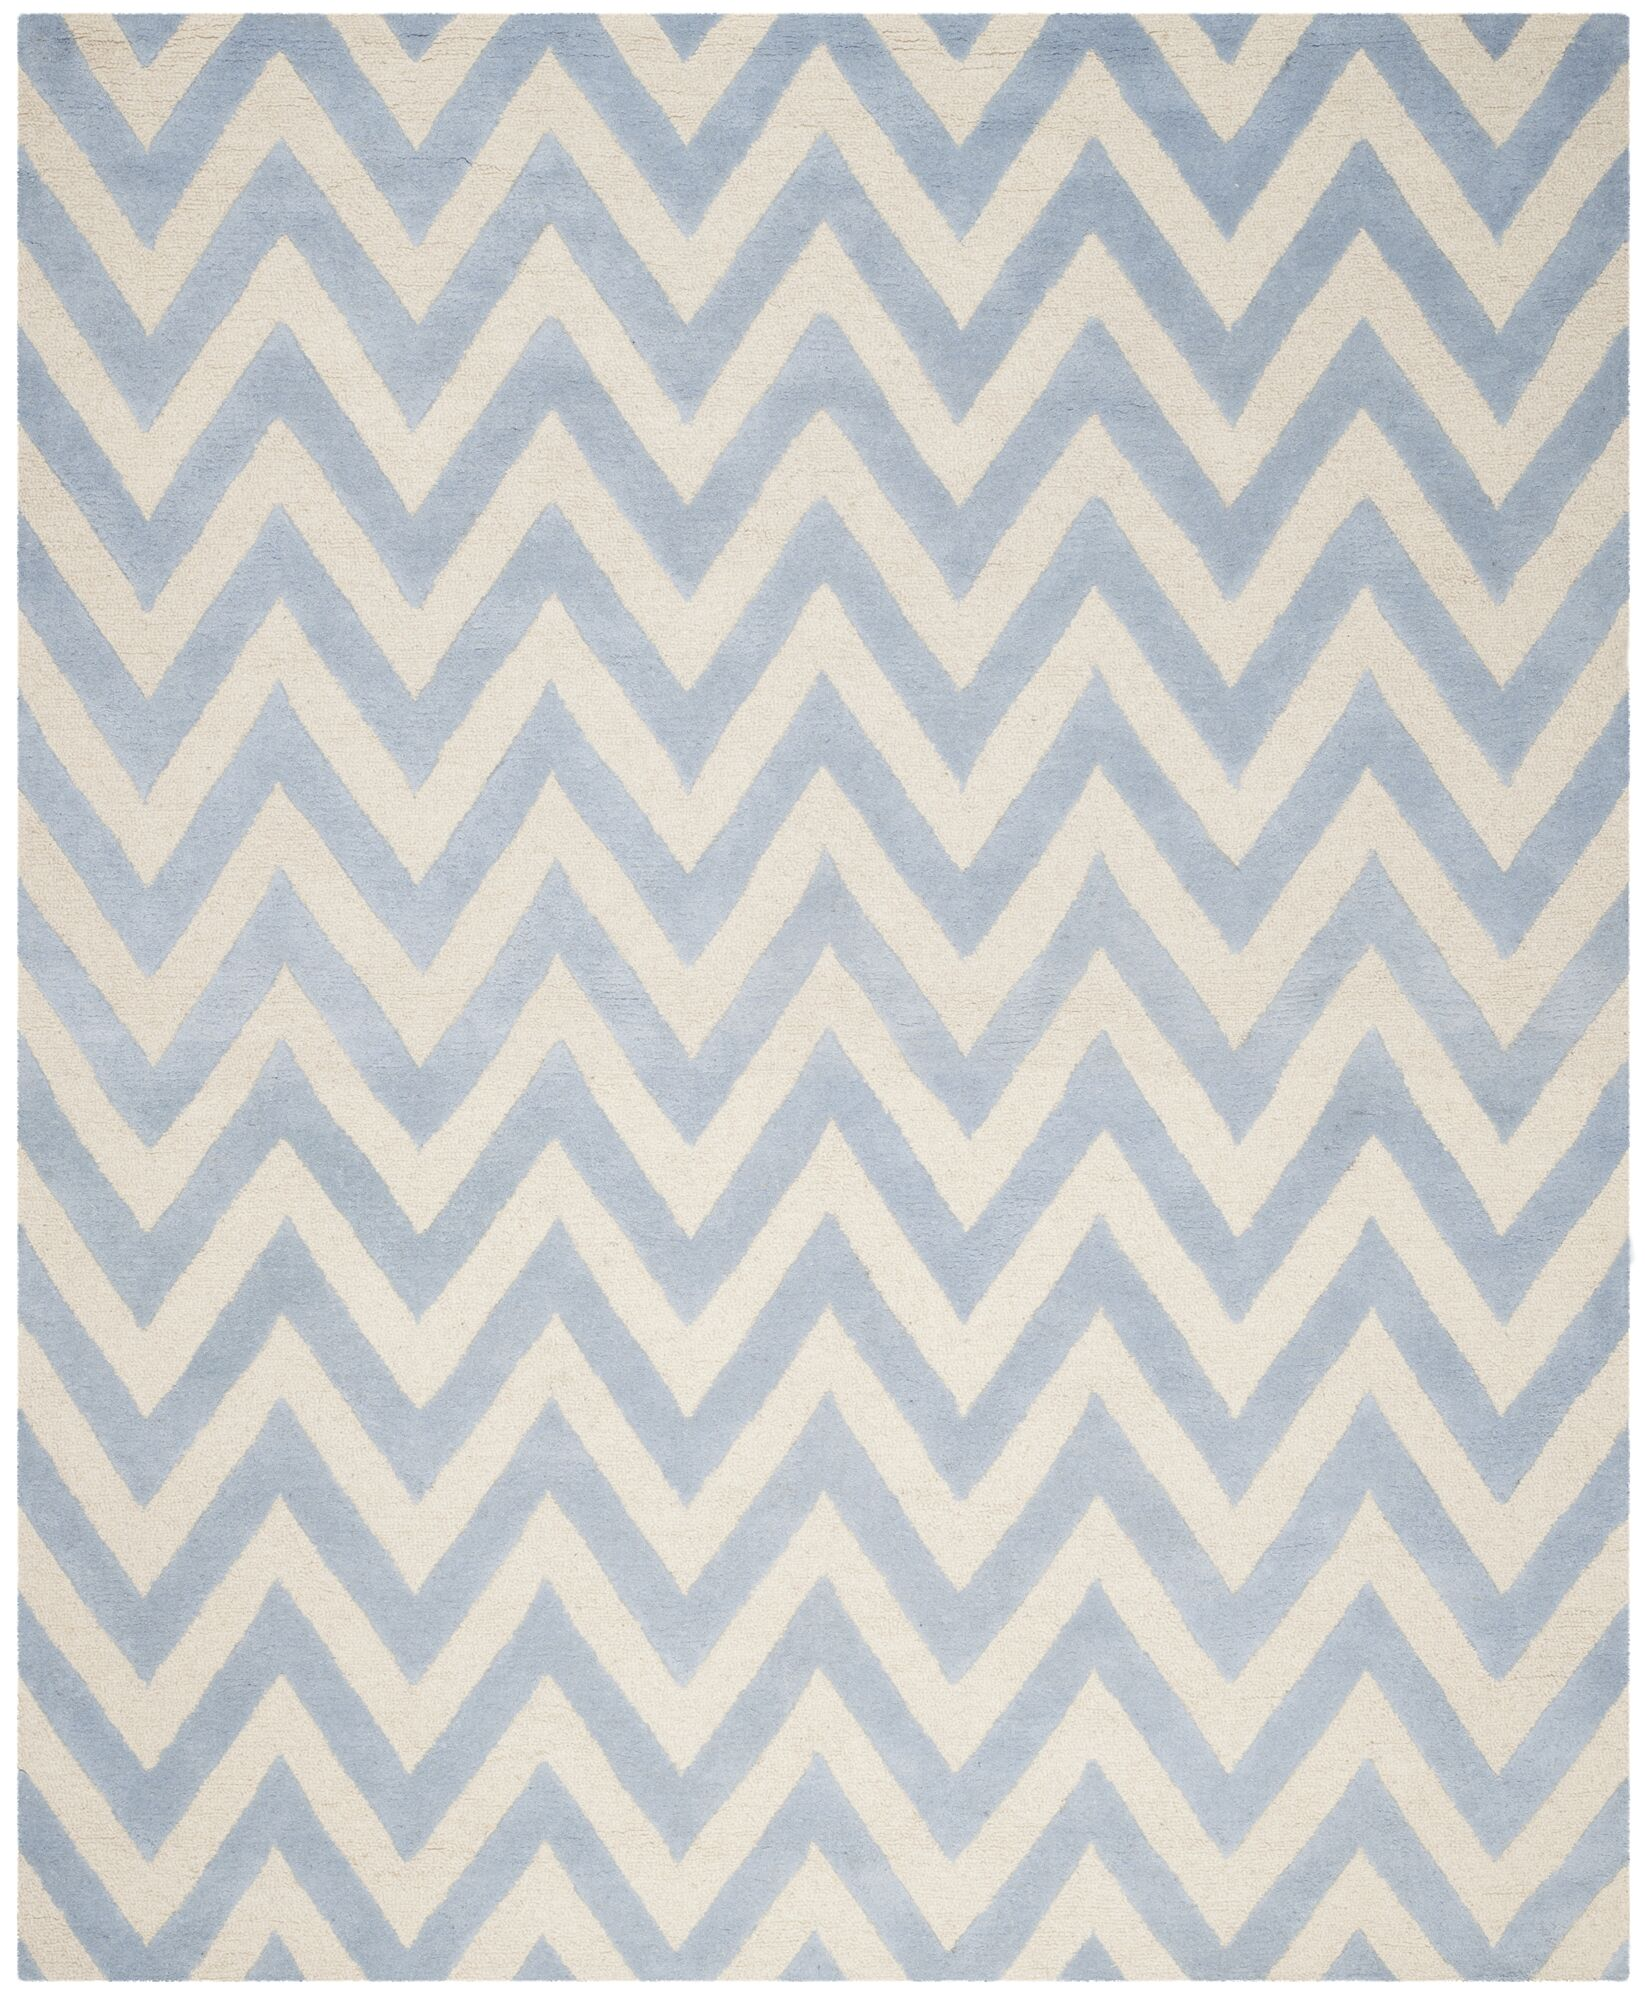 Charlenne Hand-Tufted Wool Light Blue/Ivory Area Rug Rug Size: Rectangle 8' x 10'